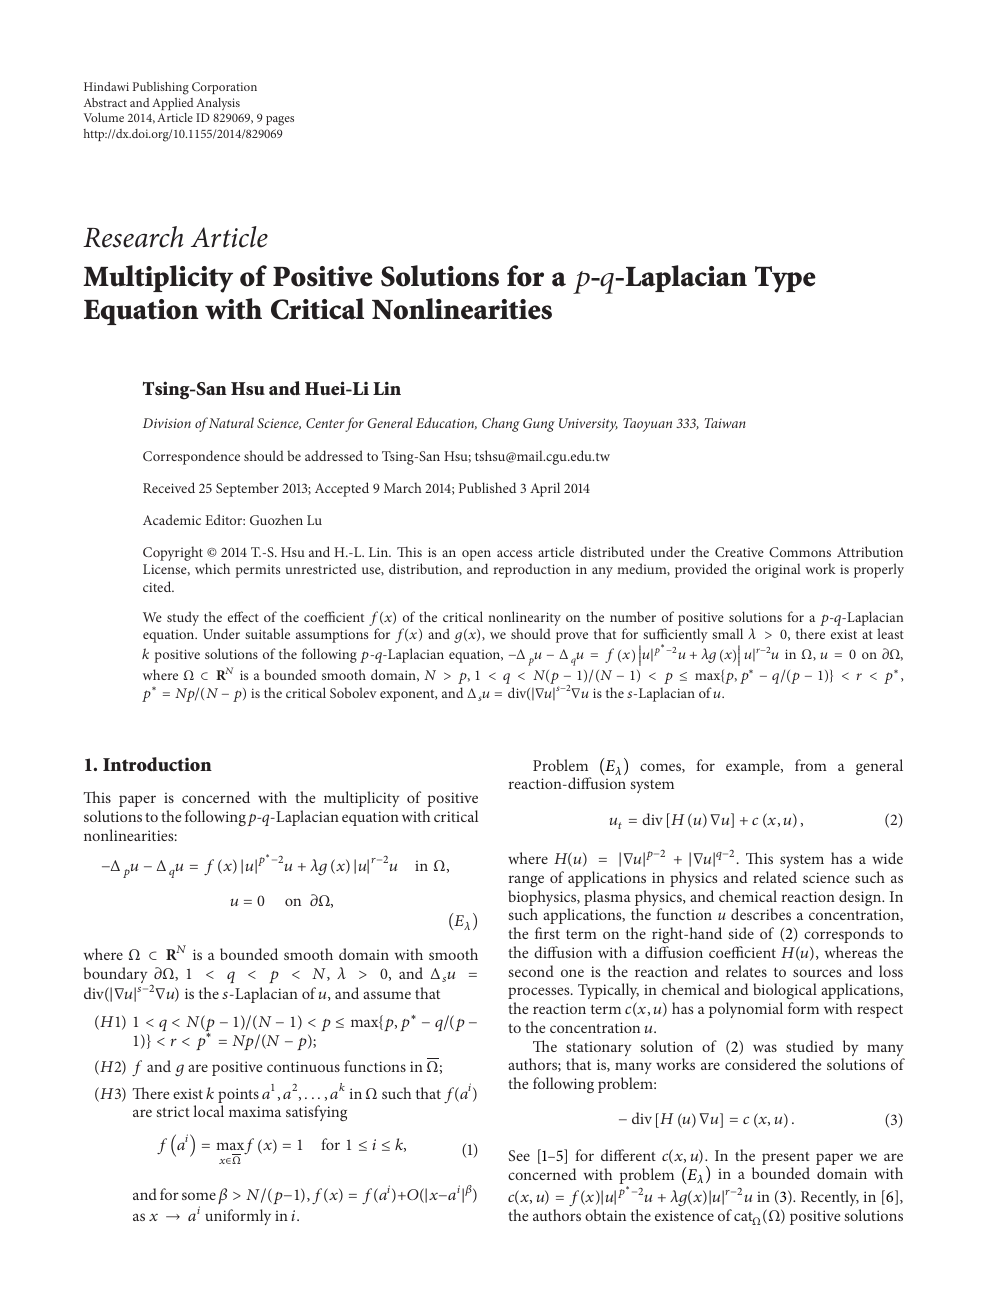 Multiplicity Of Positive Solutions For A Laplacian Type Equation With Critical Nonlinearities Topic Of Research Paper In Mathematics Download Scholarly Article Pdf And Read For Free On Cyberleninka Open Science Hub